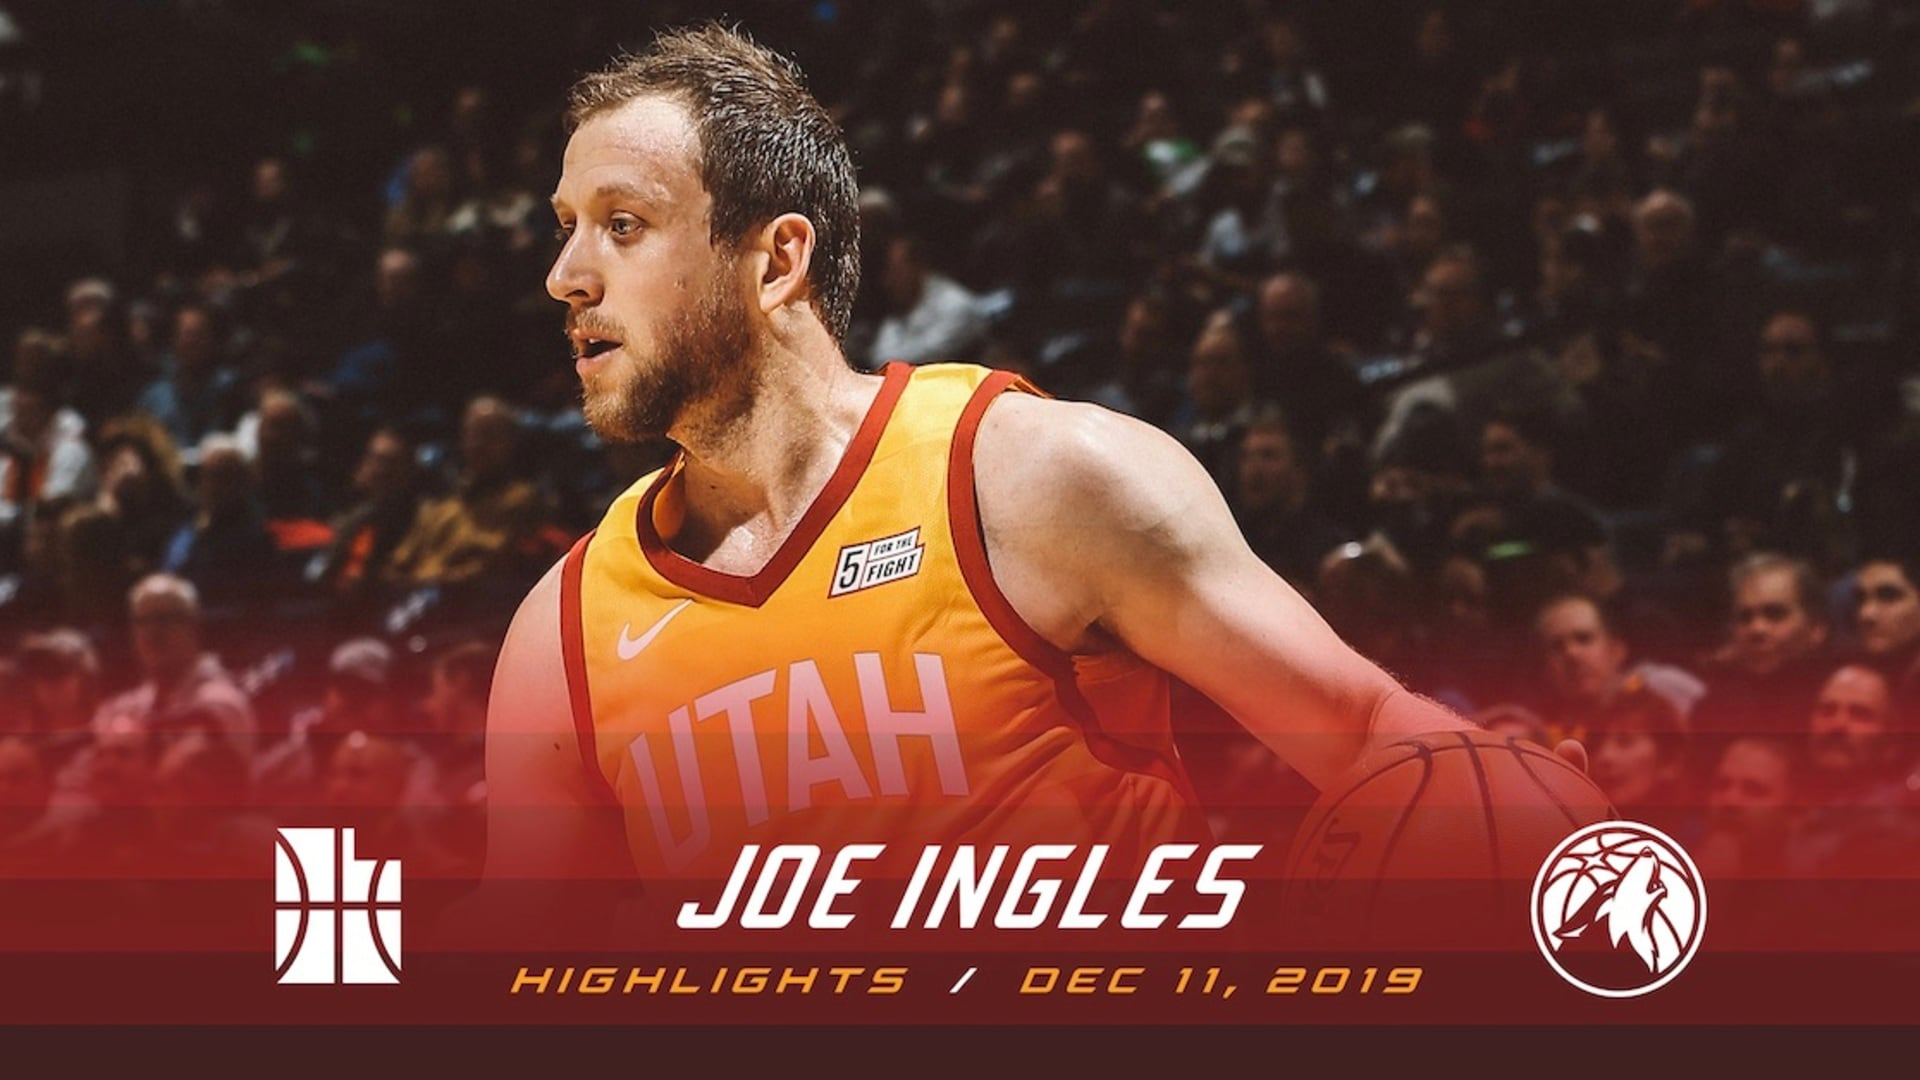 Highlights: Joe Ingles — 23 points, 5 rebounds